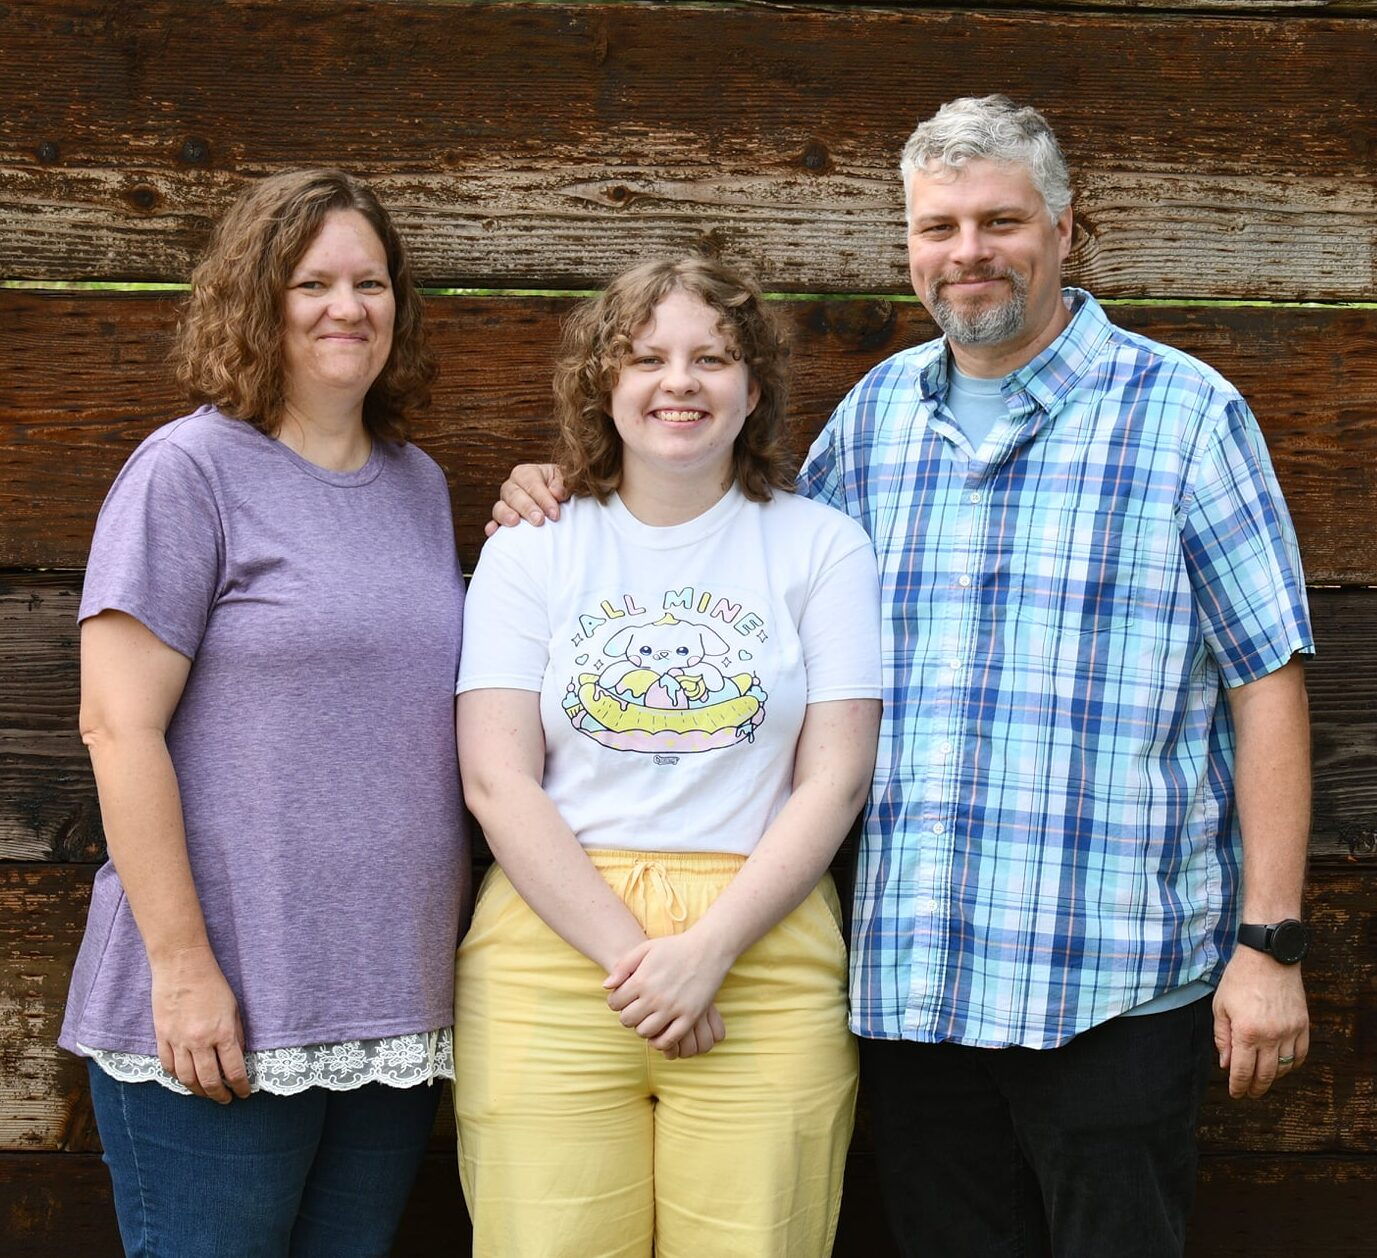 Trey Murray with his wife and daughter